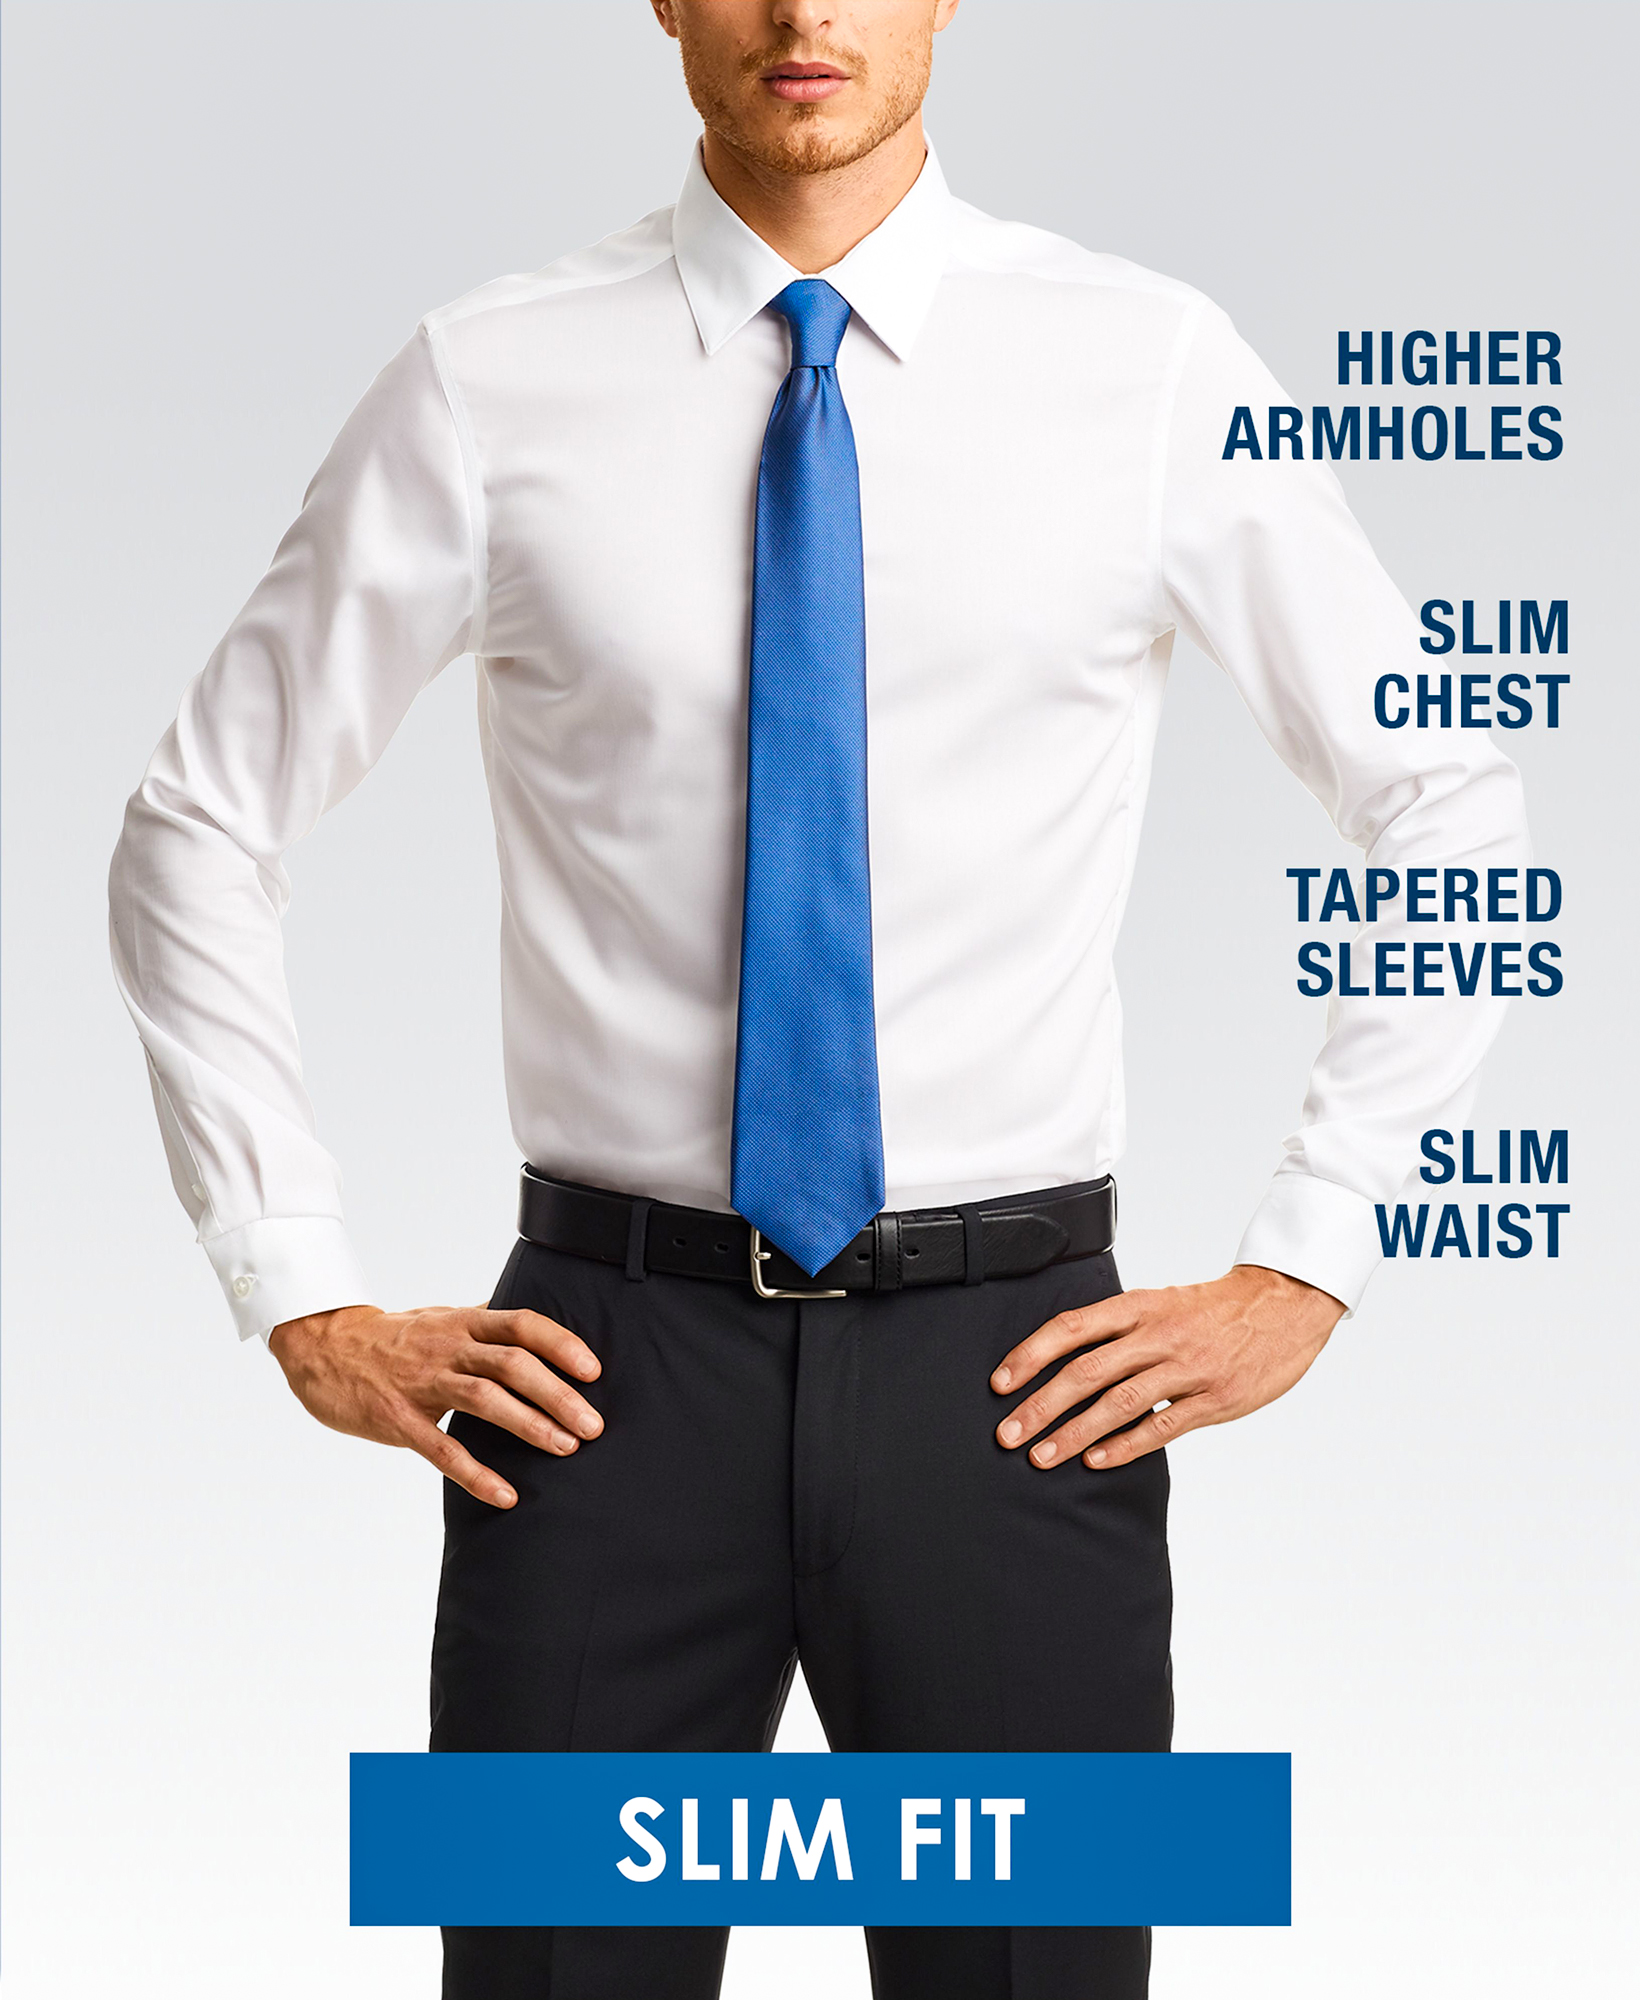 Slim fit dress shirt style